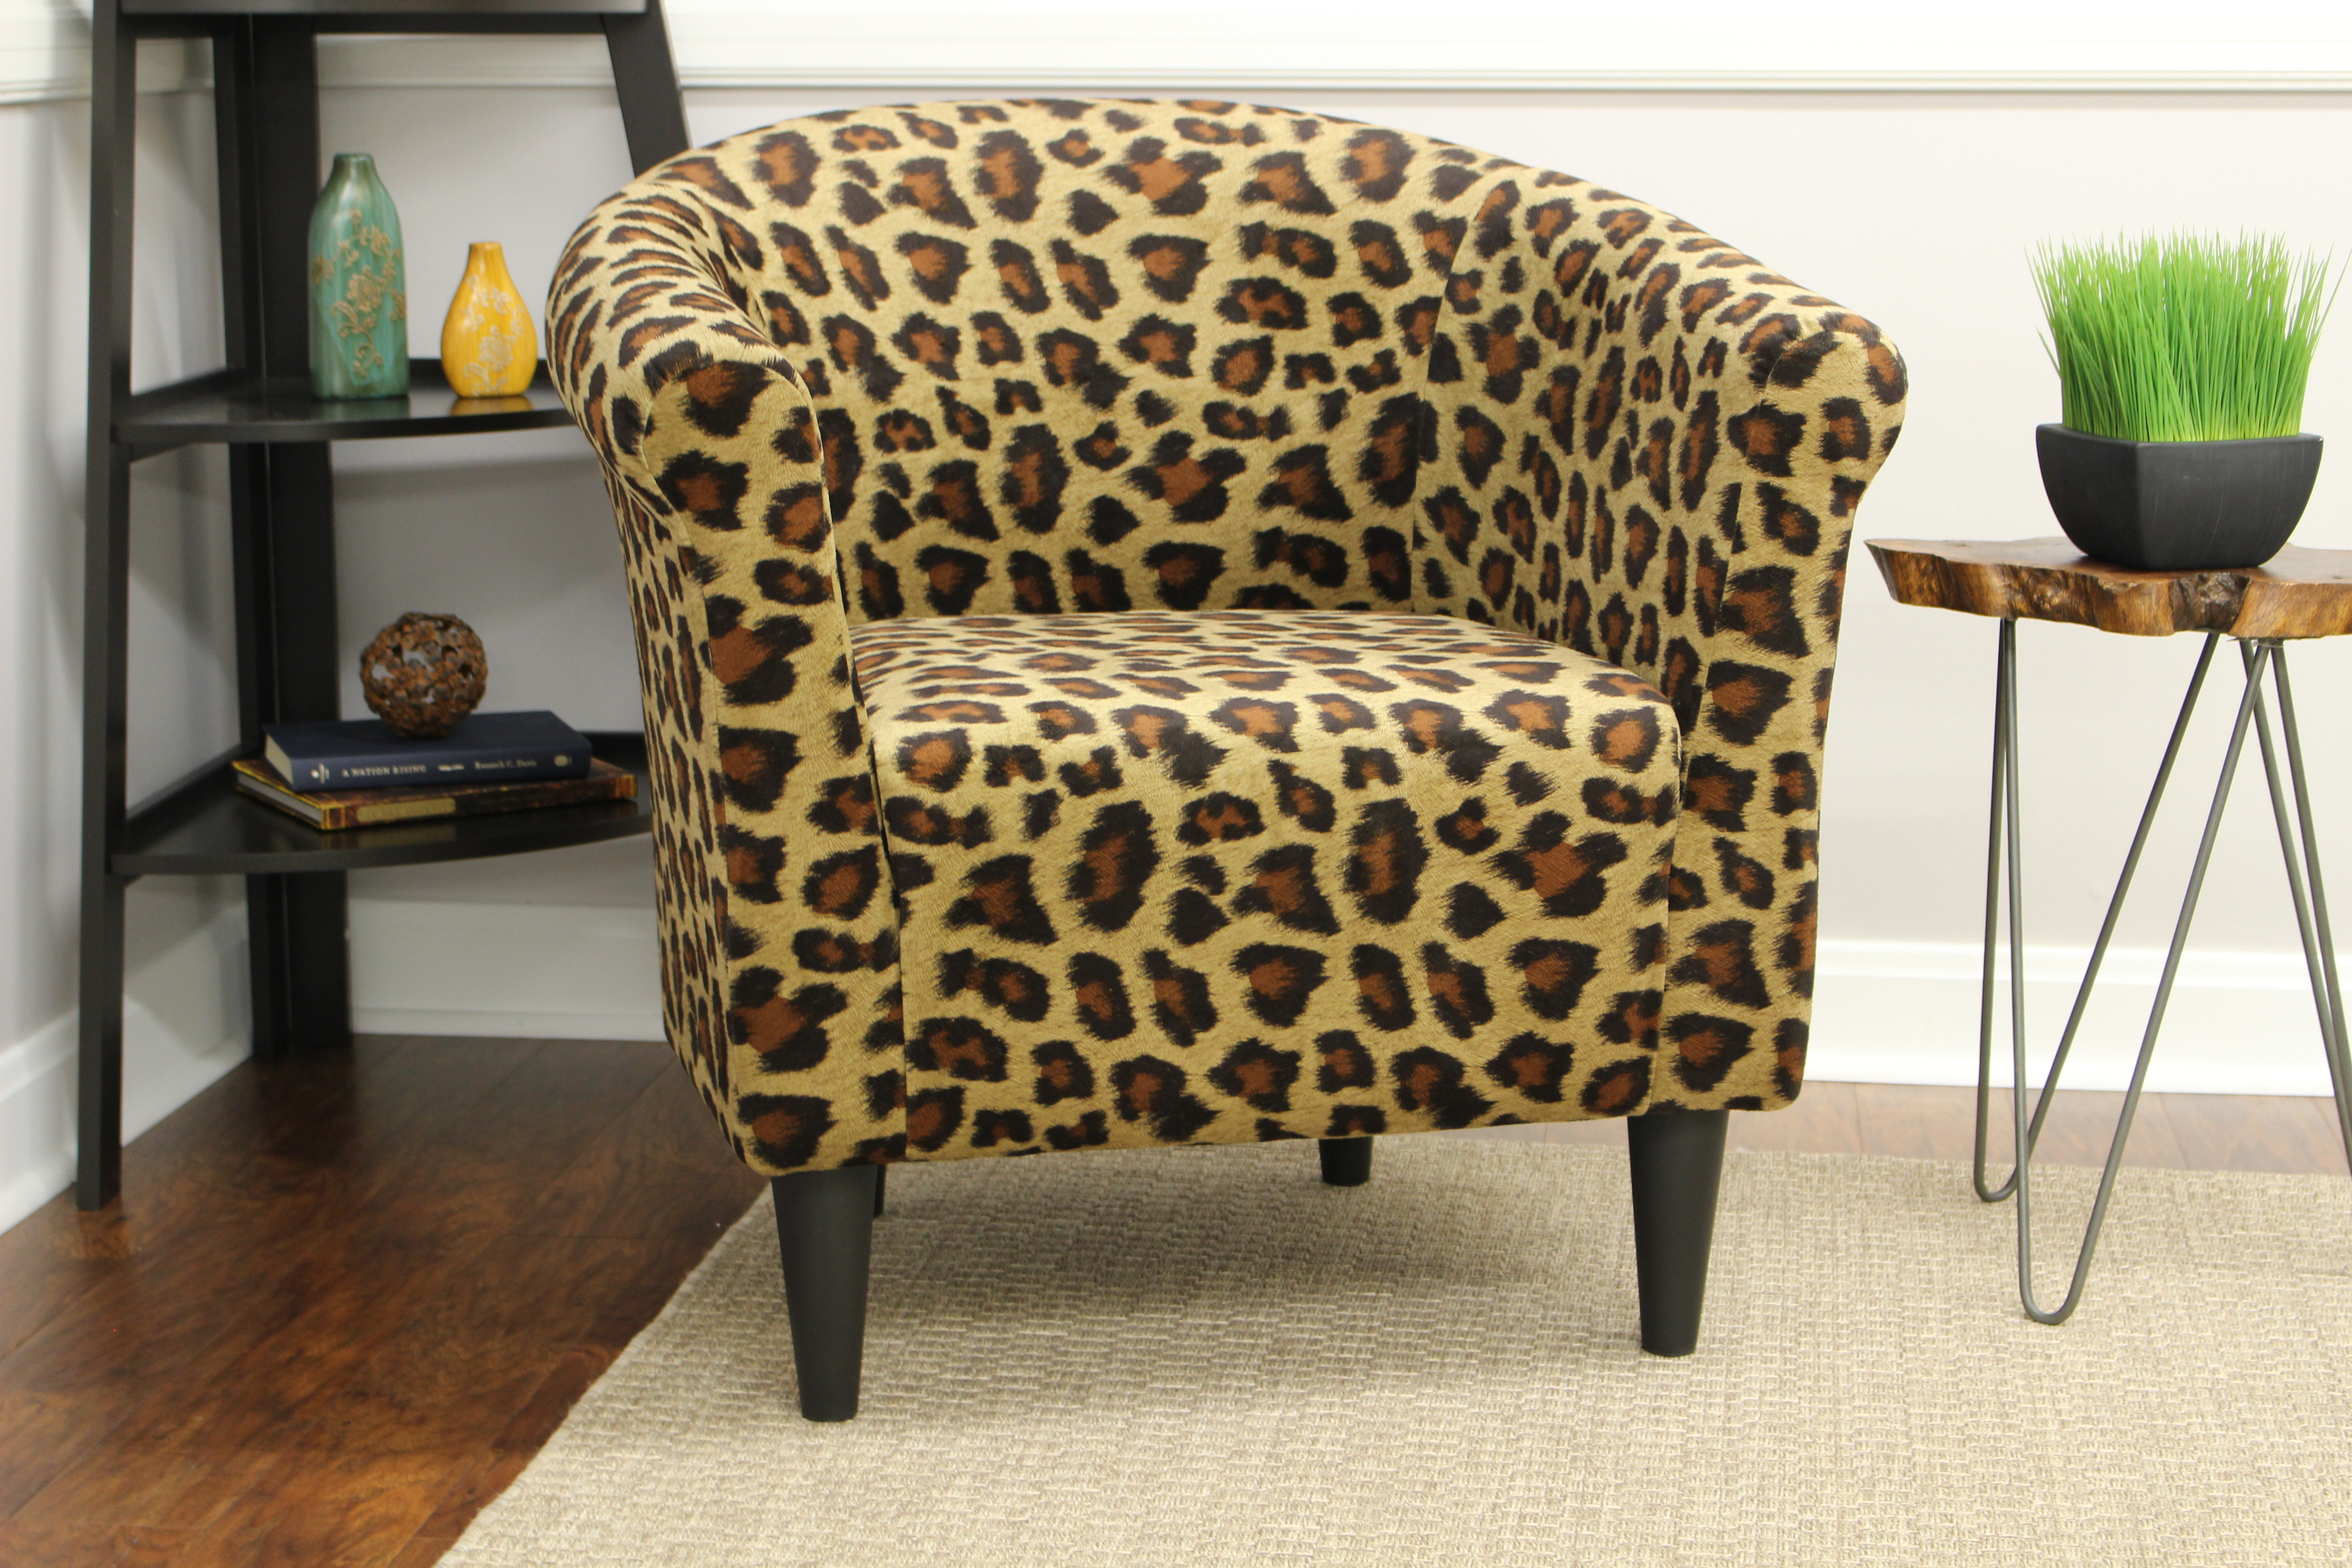 Charmant Leopard Print Accent Chair Armchair Barrel Design Animal Print Club  Upholstered